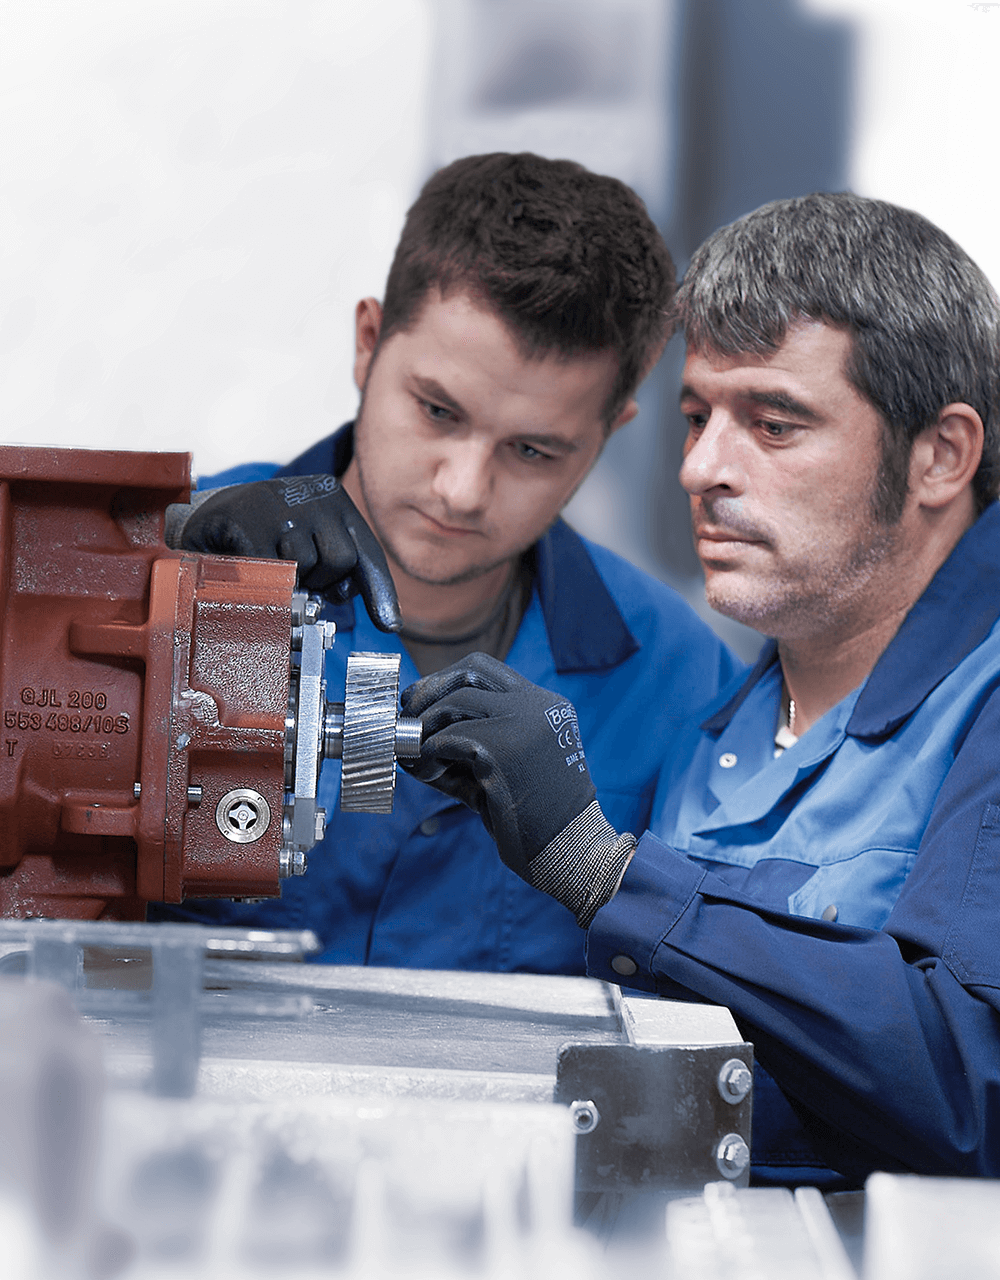 Two experienced AERZEN service technicians repair an AERZEN unit